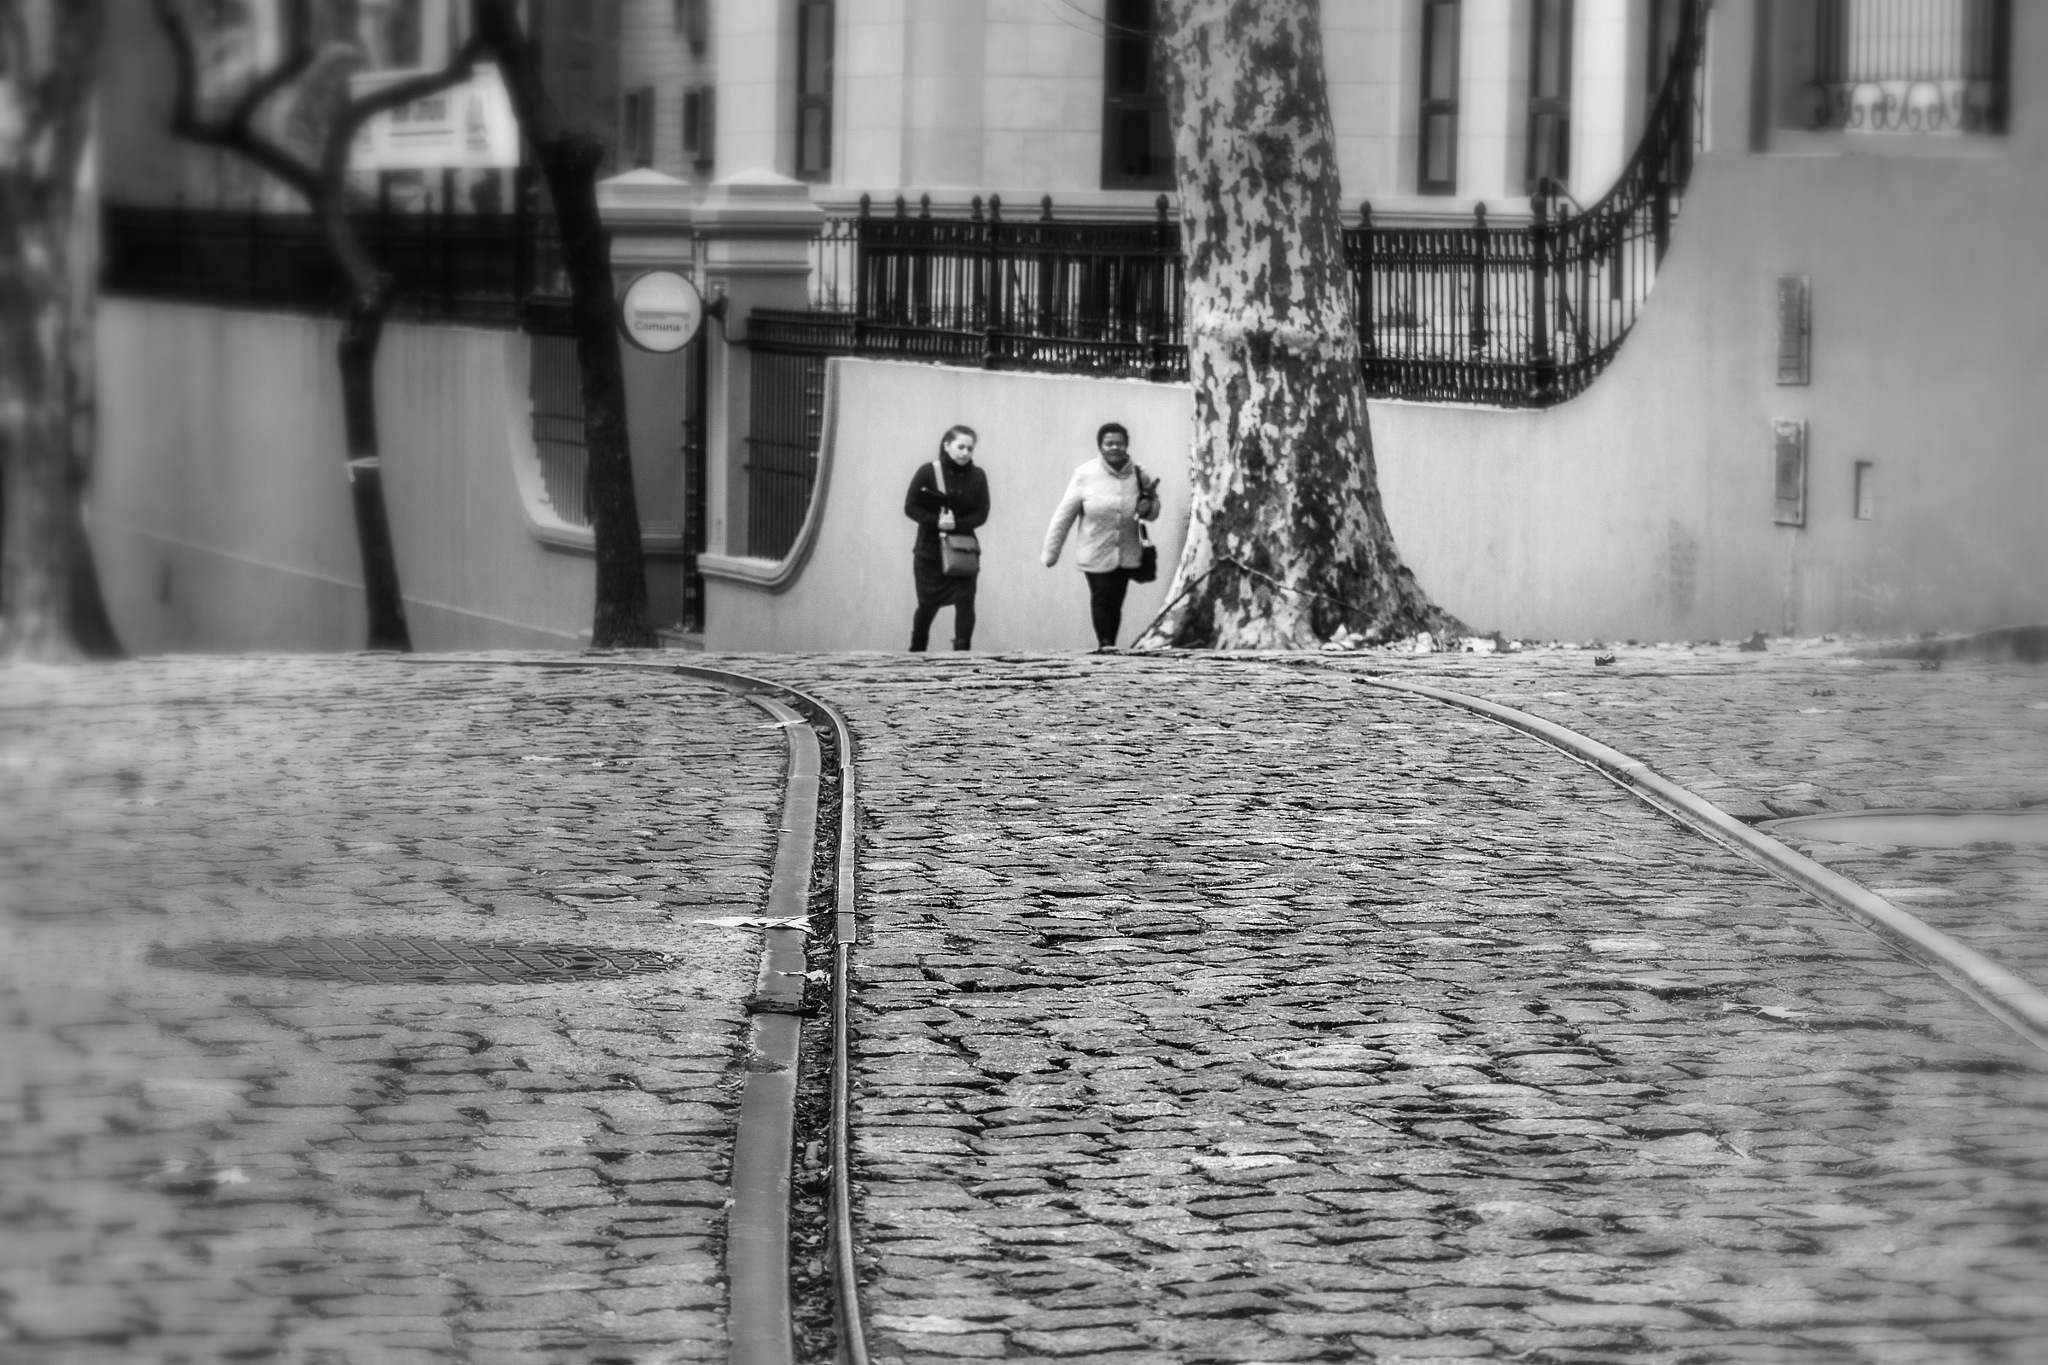 down in the street by claudio.spirito.7